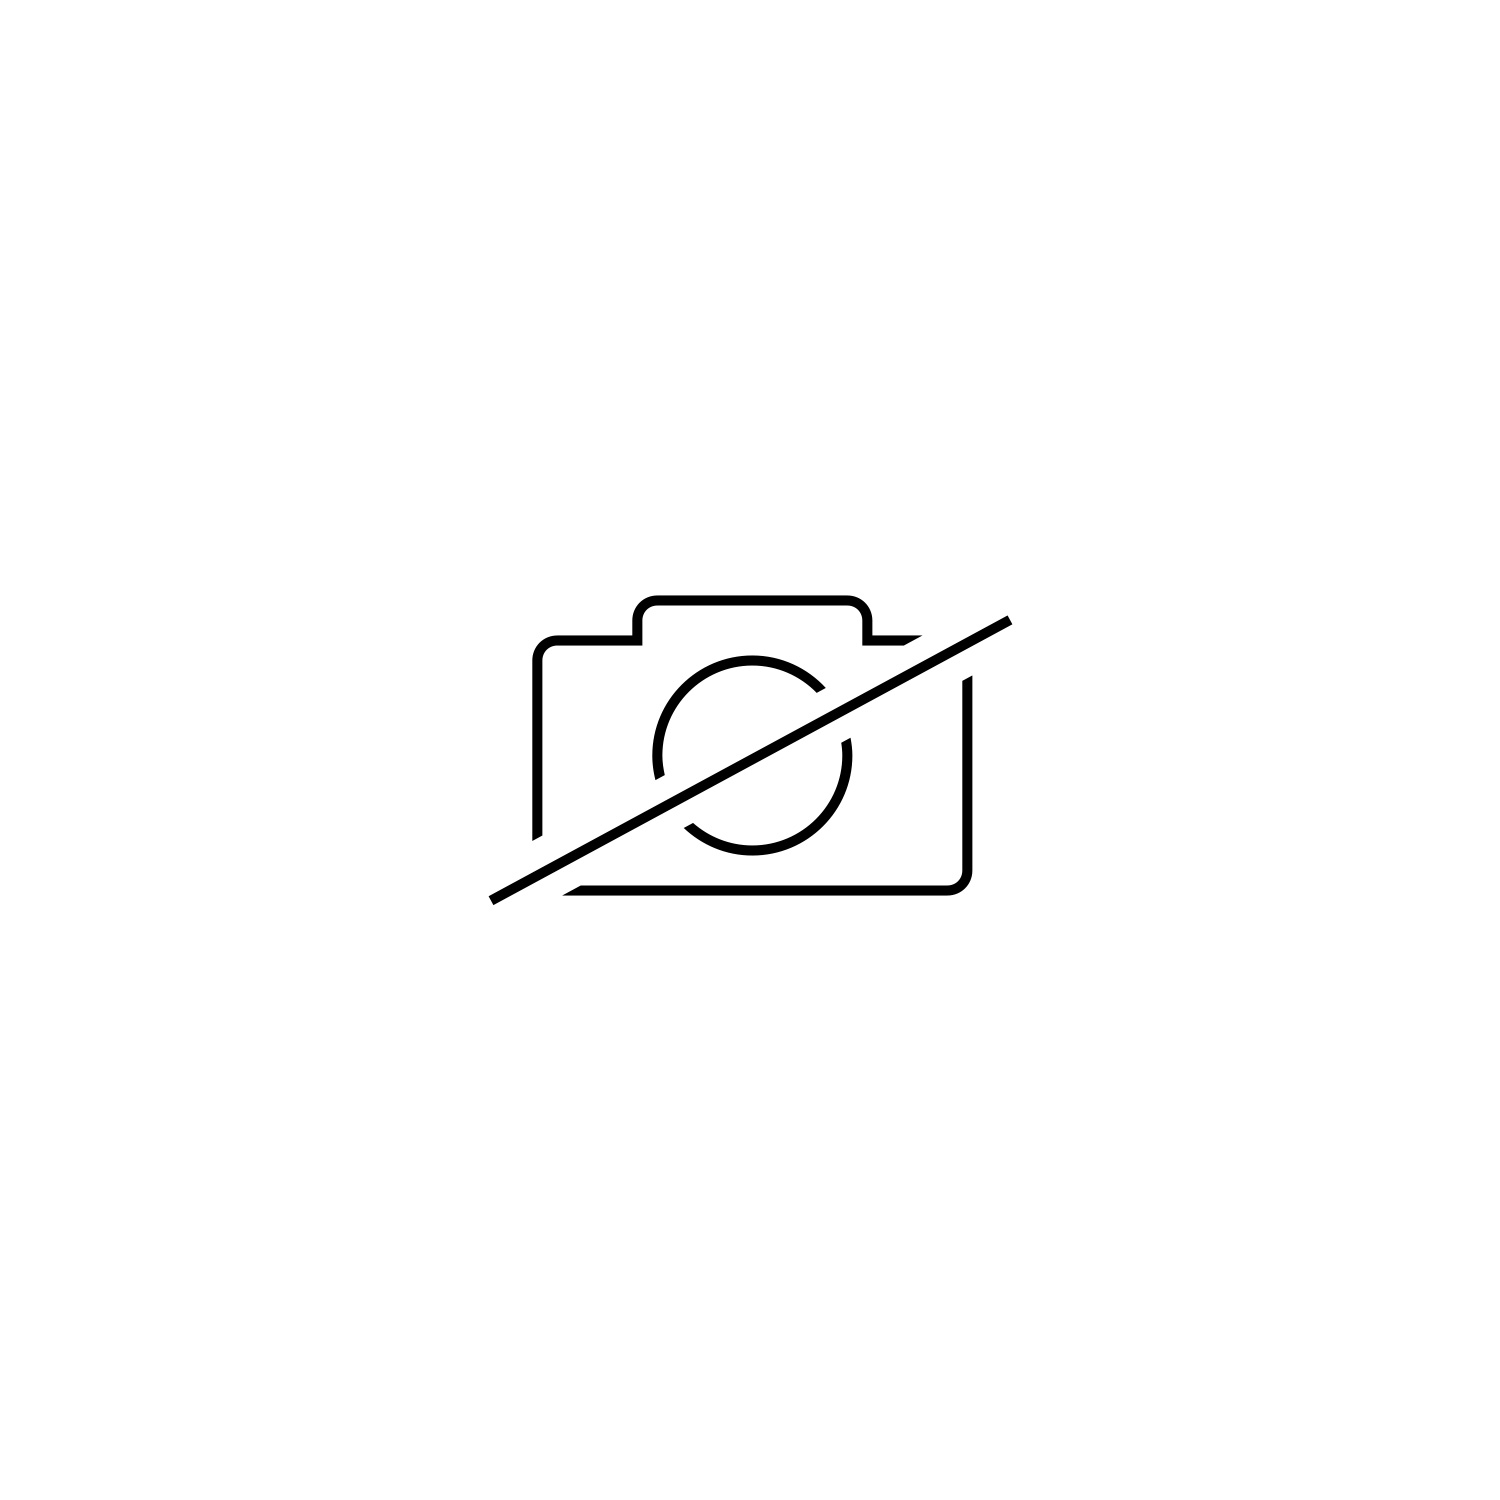 Audi reflective logo jacket e-tron, Mens, Dark grey, M